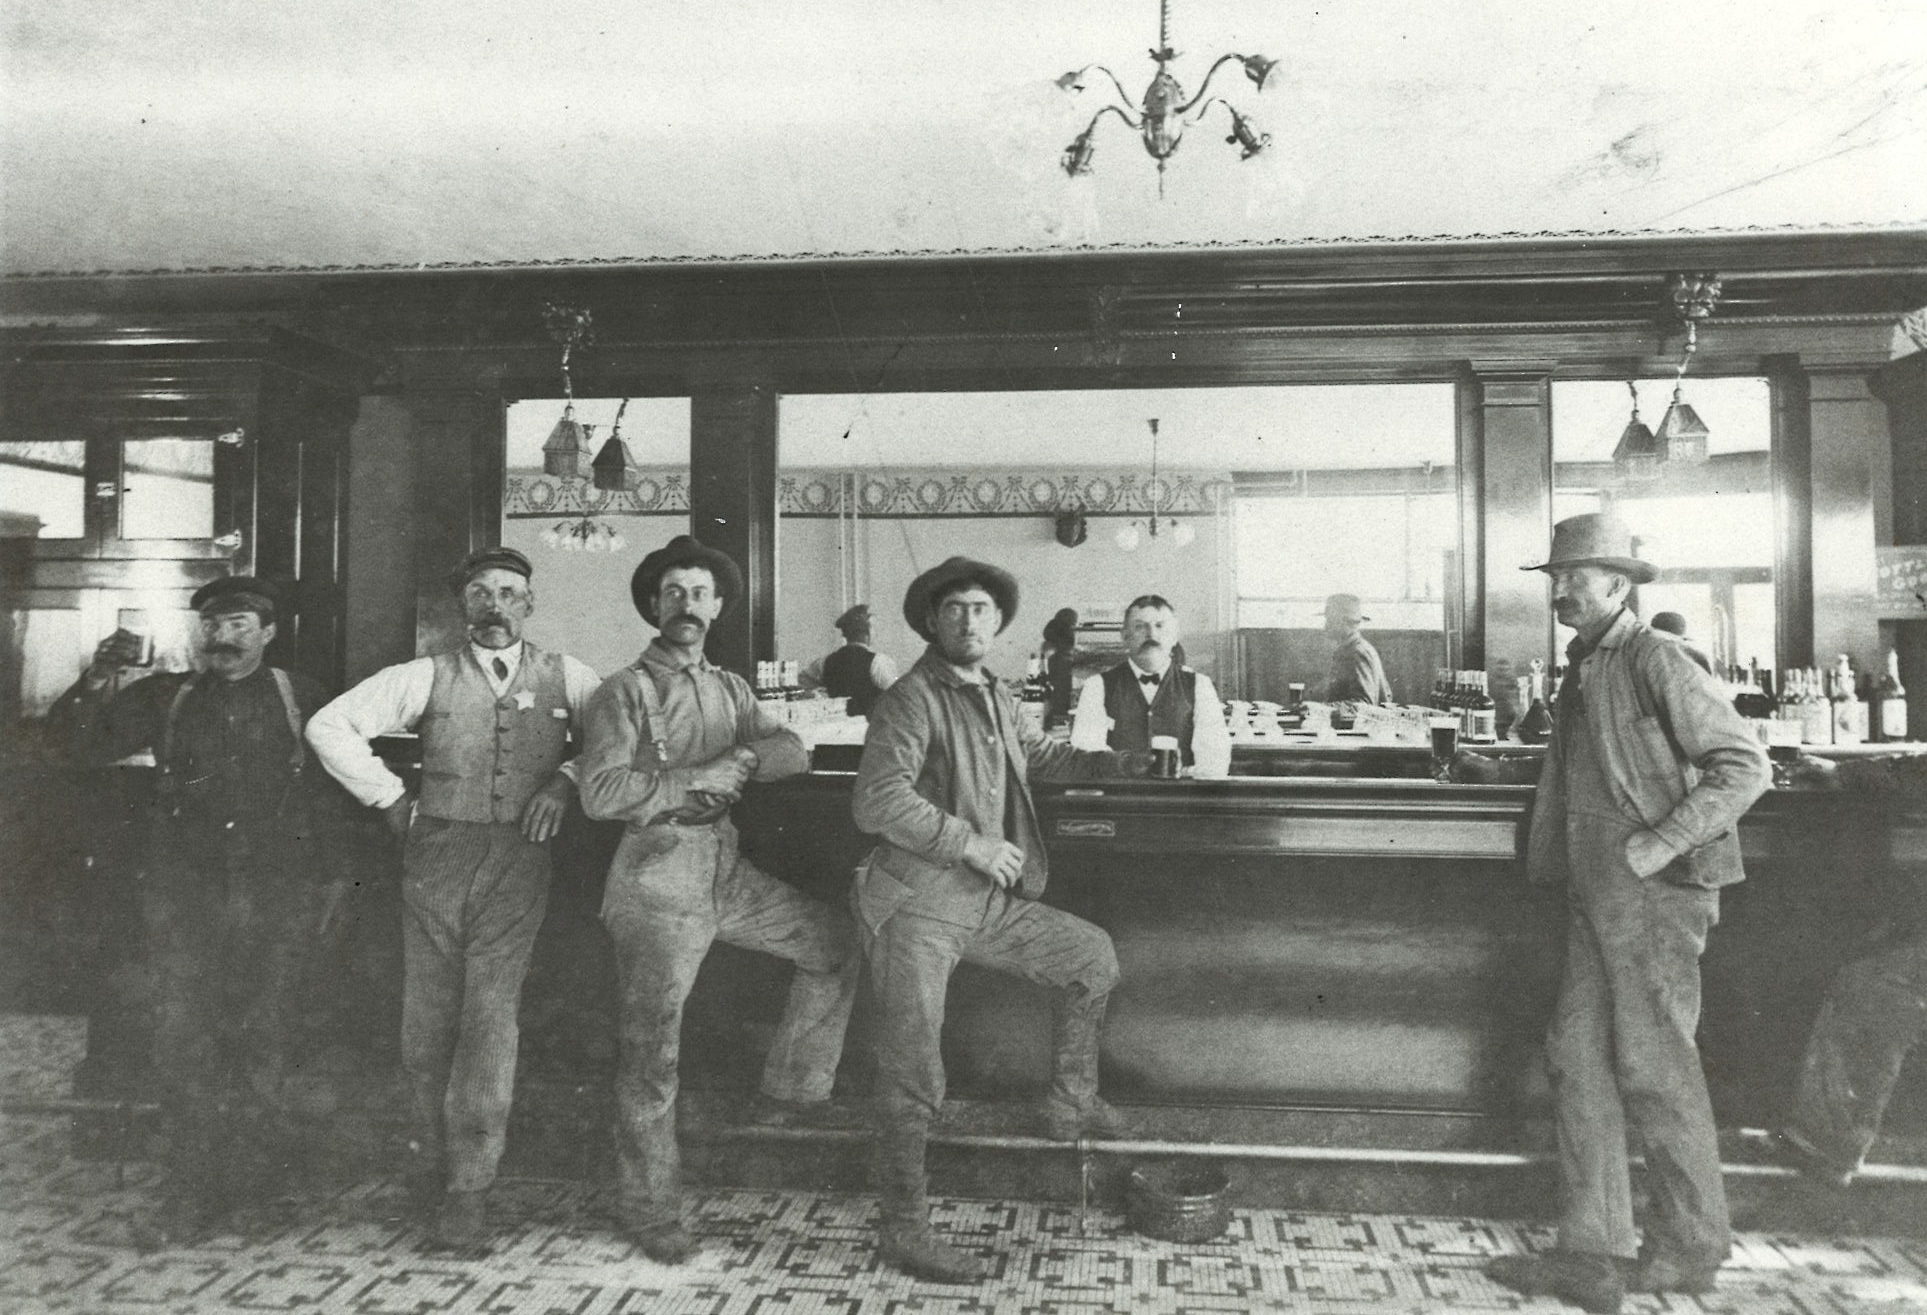 Art & Alma's in 1908, then known as Rulhausen's Tavern